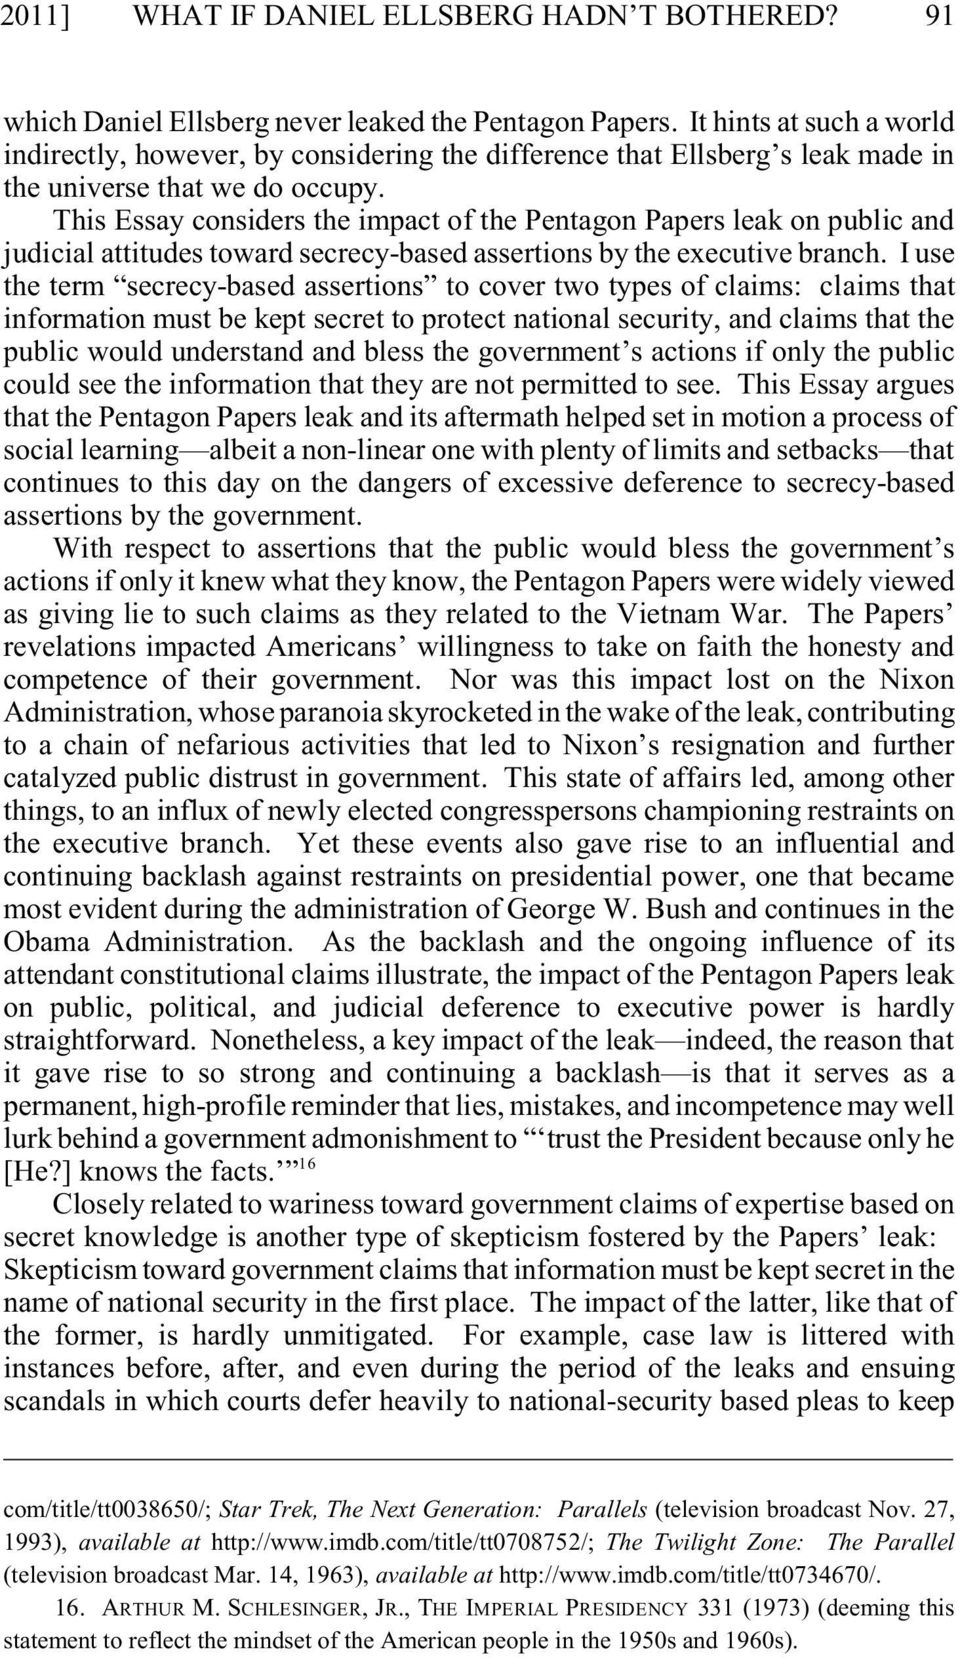 This Essay considers the impact of the Pentagon Papers leak on public and judicial attitudes toward secrecy-based assertions by the executive branch.